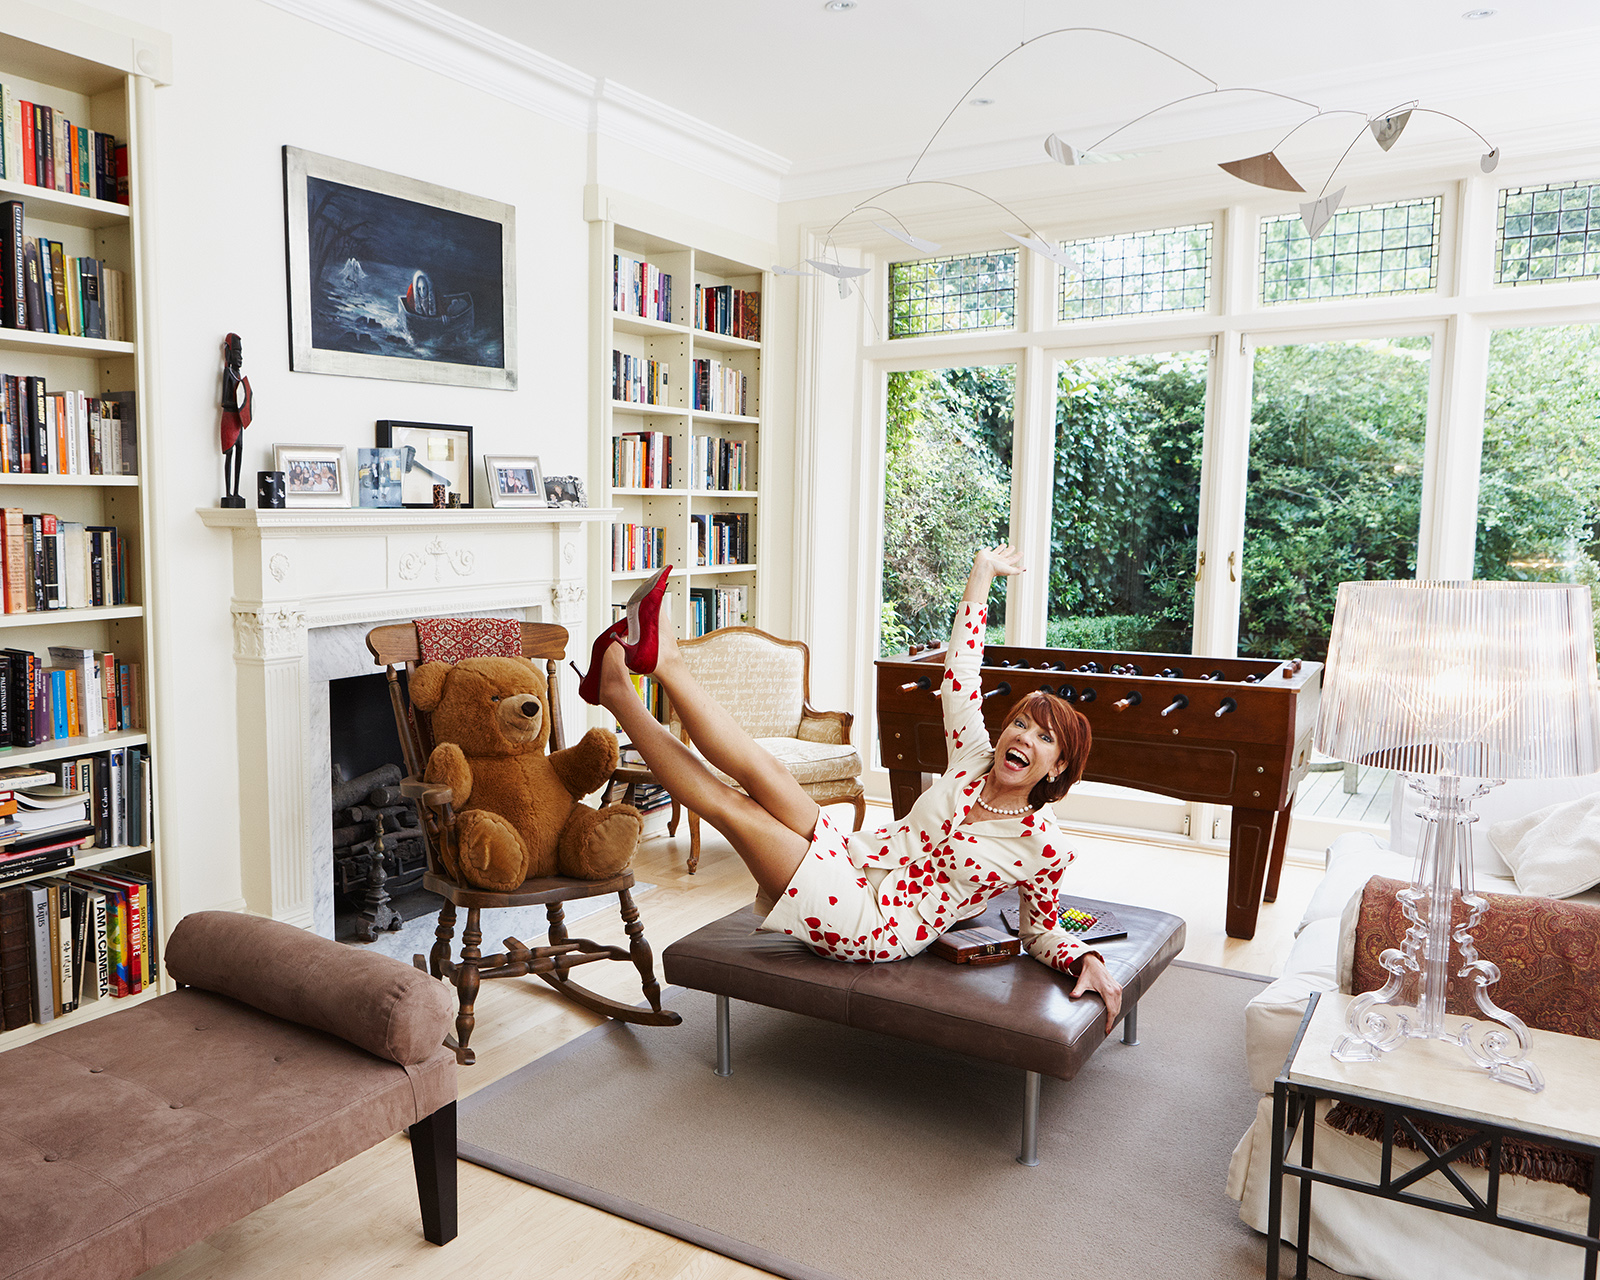 At home with Kathy Lette